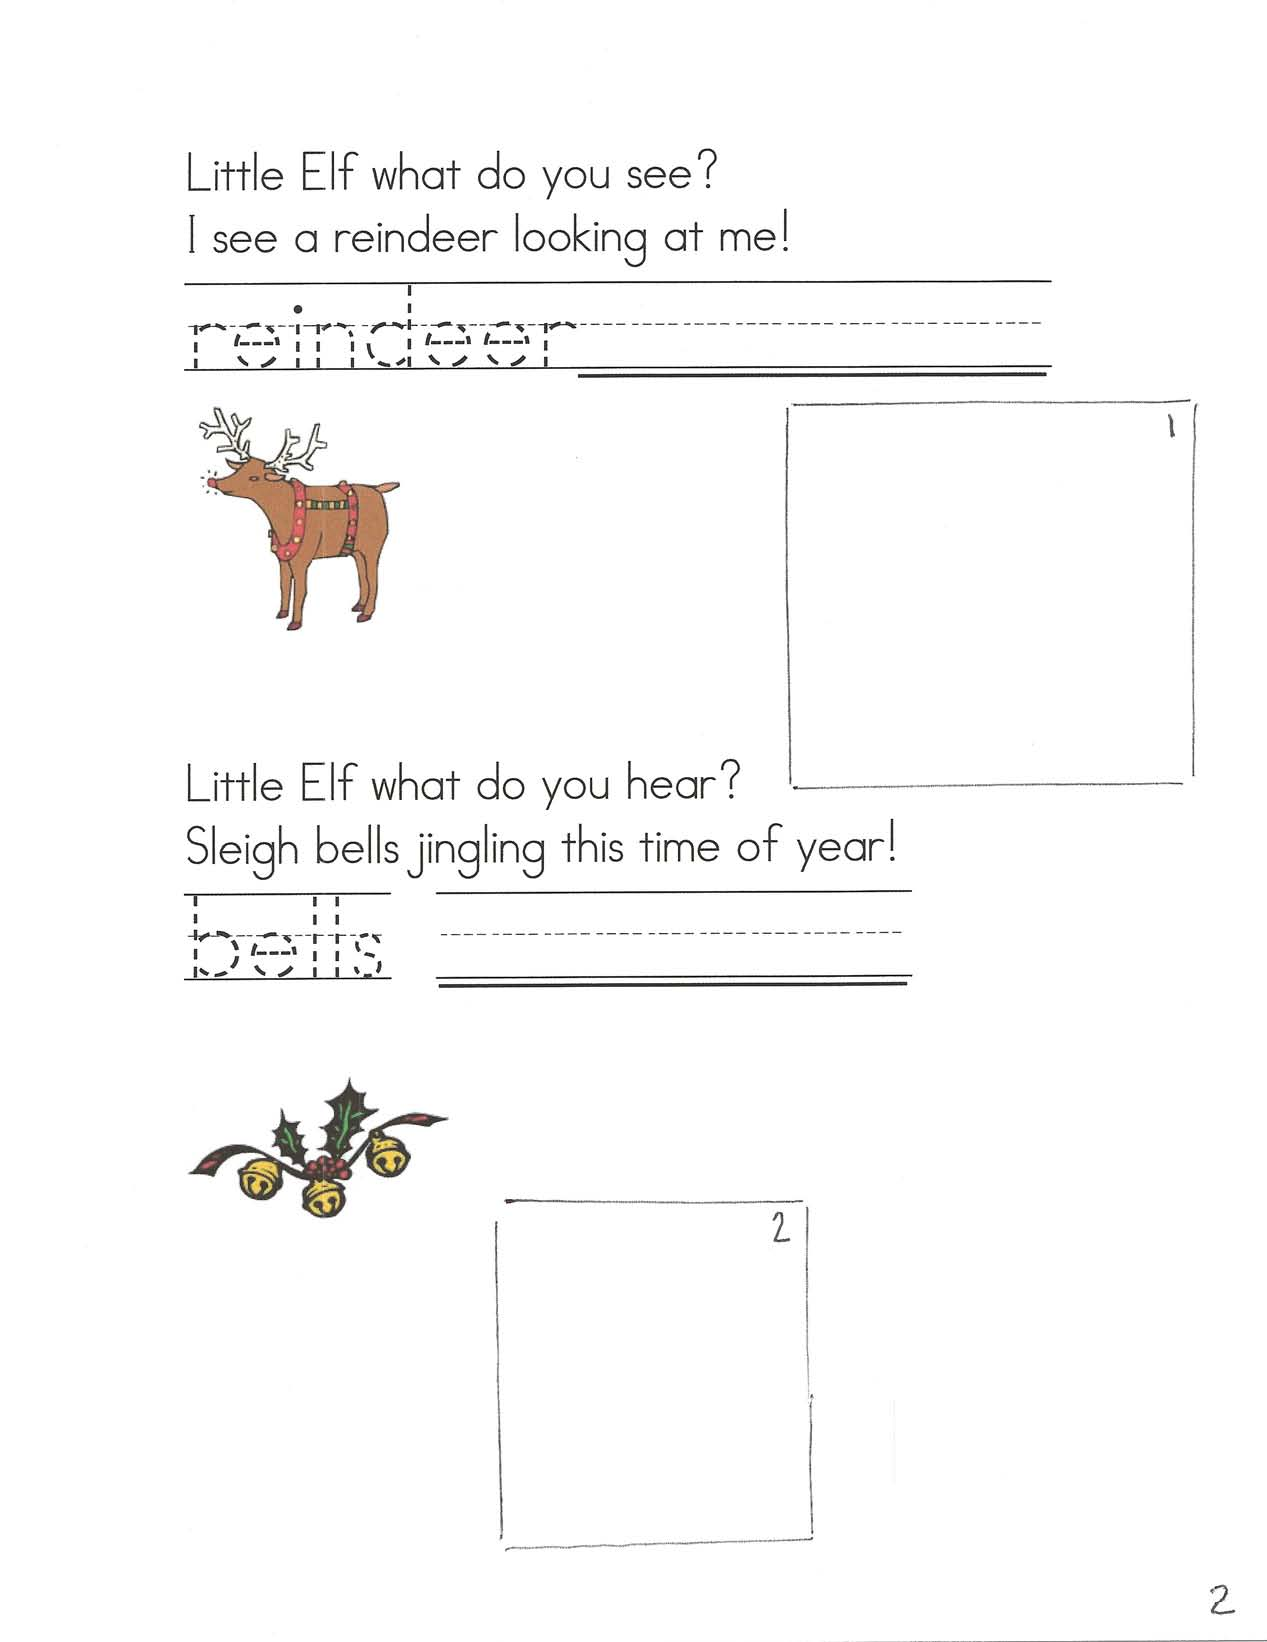 Elf on a shelf activities, elf button, elf certificate, elf writing prompts, writing prompts for december,elf on a shelf lessons, 5 senses, rhyming booklet, rhyming lessons, elf on a shelf booklet, elf on a shelf craftivities, elf on a shelf, December activities, December games, behavior management techniques, elf activities, discipline tips, classroom management,